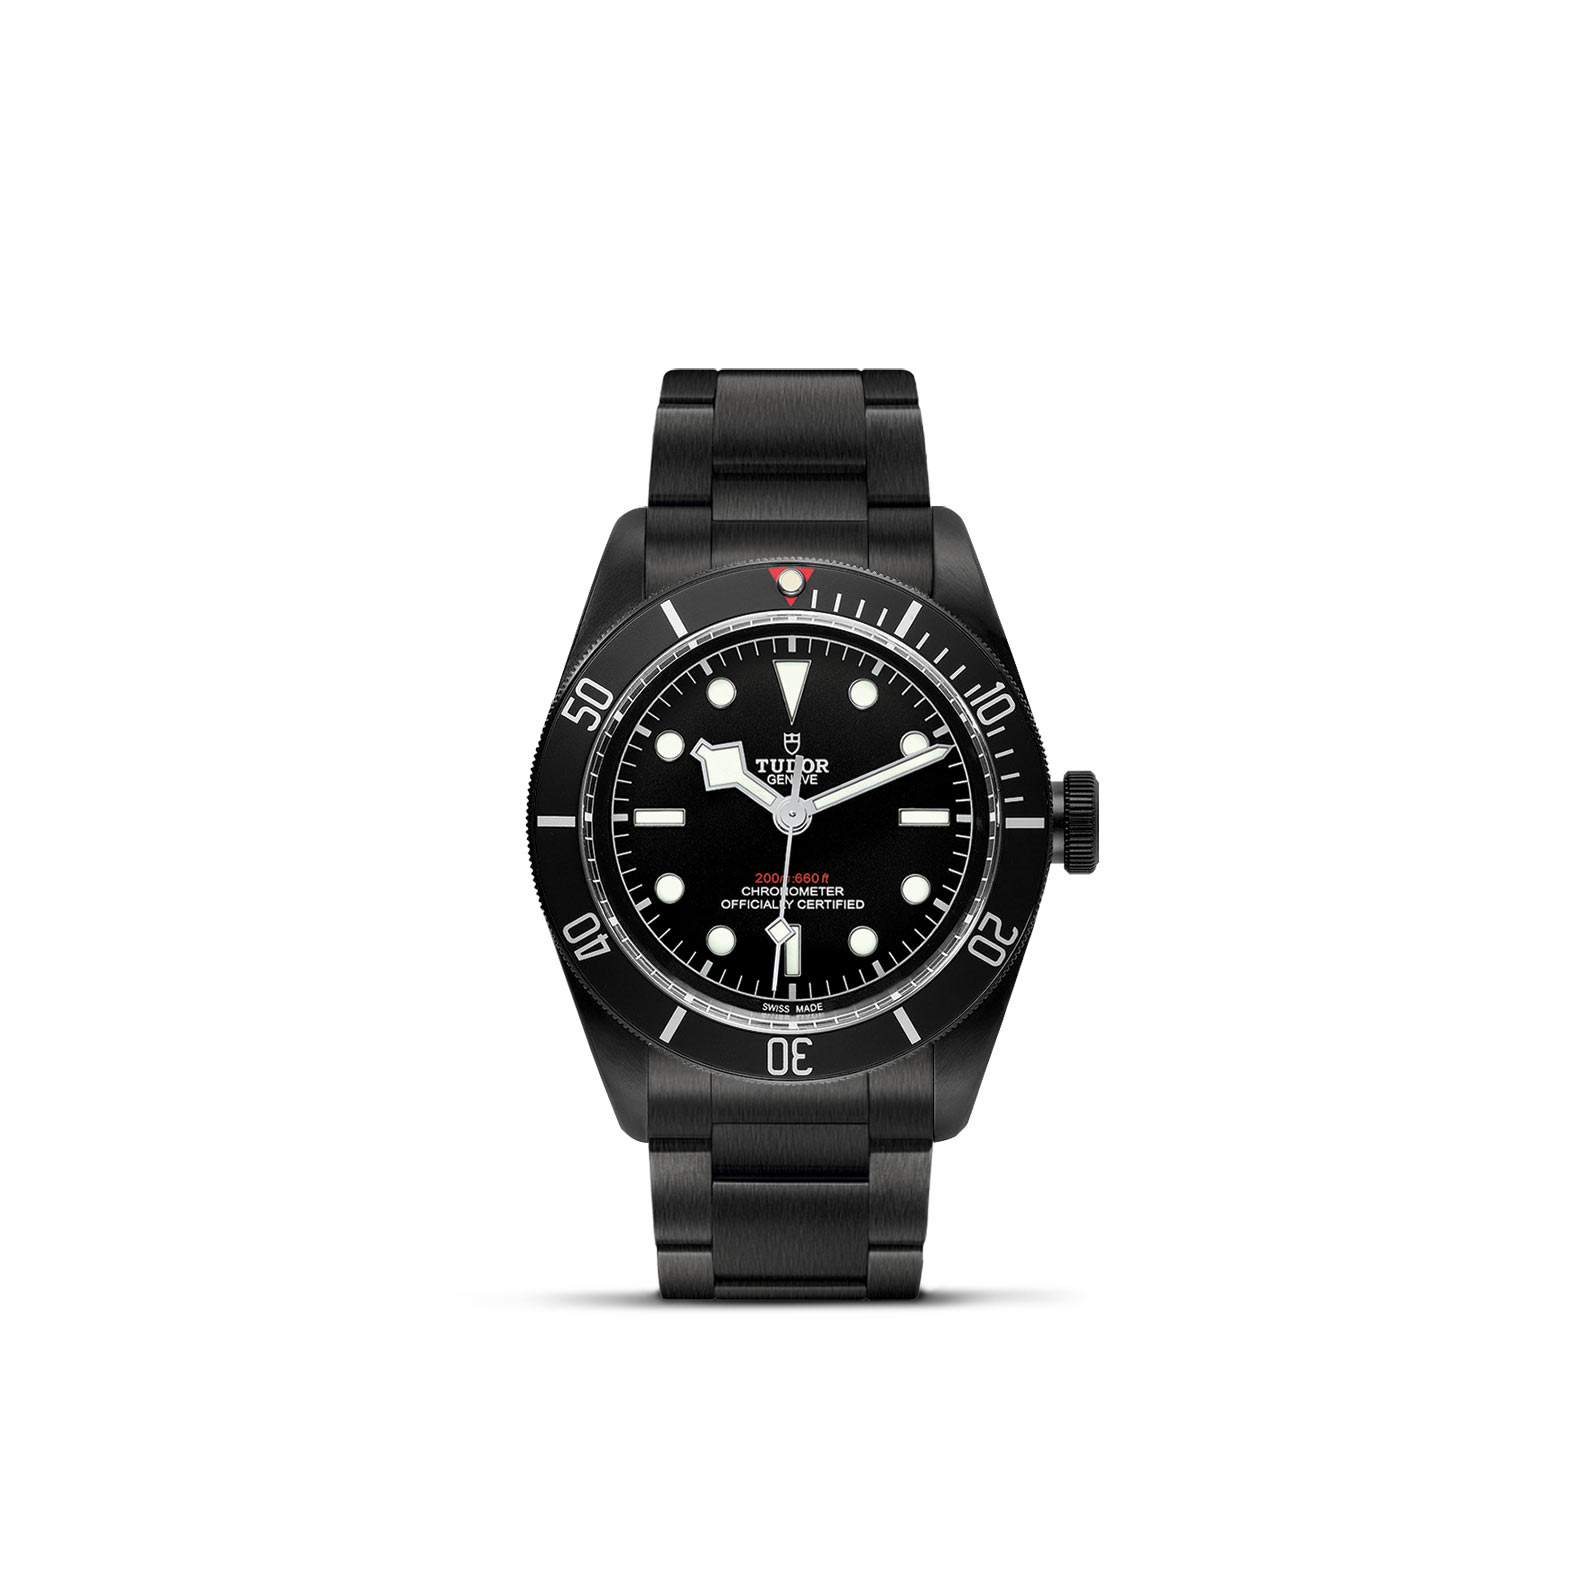 Goldfinger Jewelry TUDOR Black Bay collection